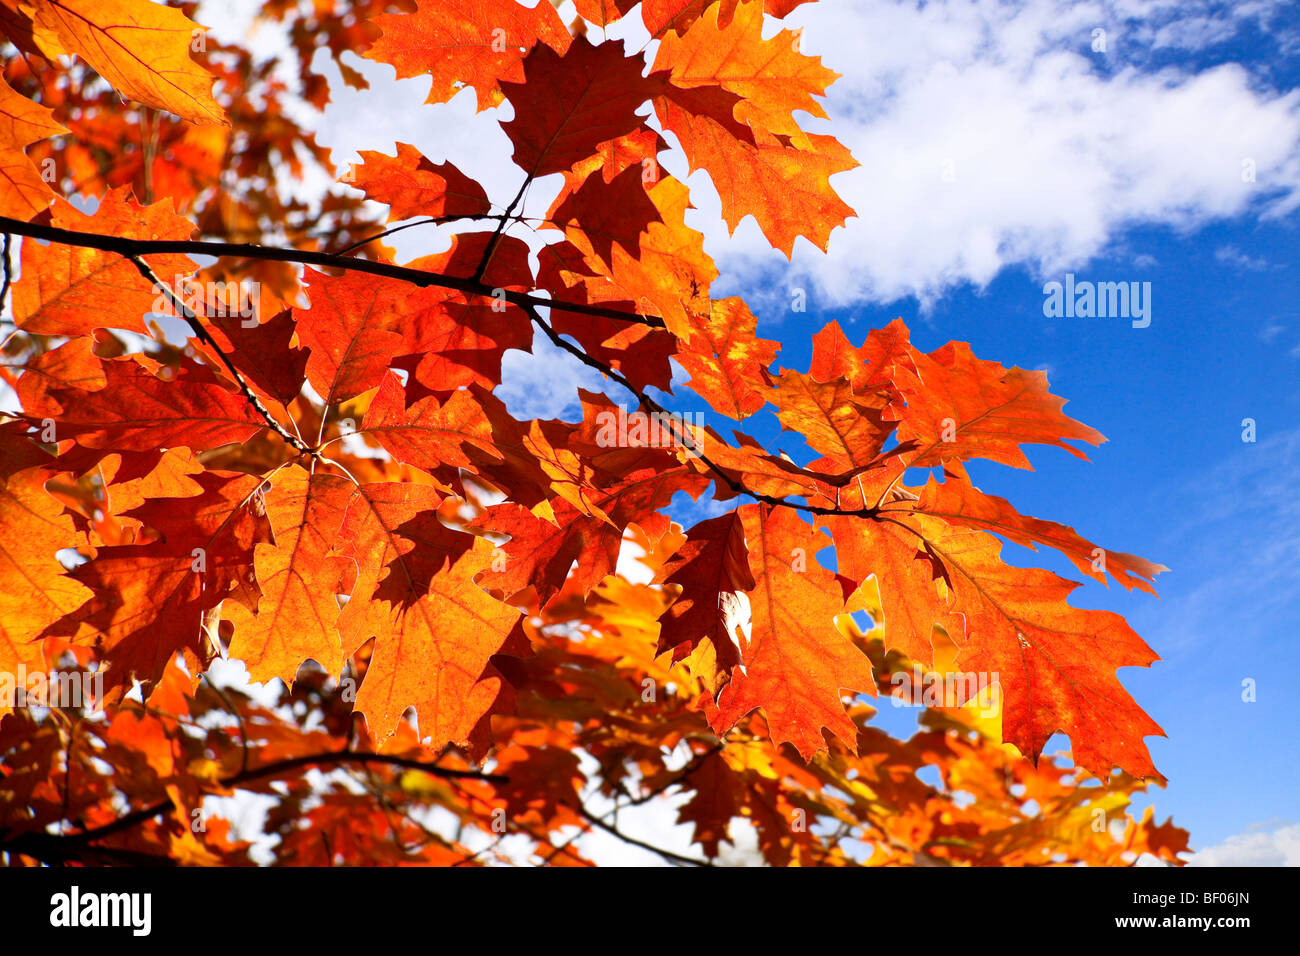 the autumn has come also leaves on trees have become red and yellow Stock Photo